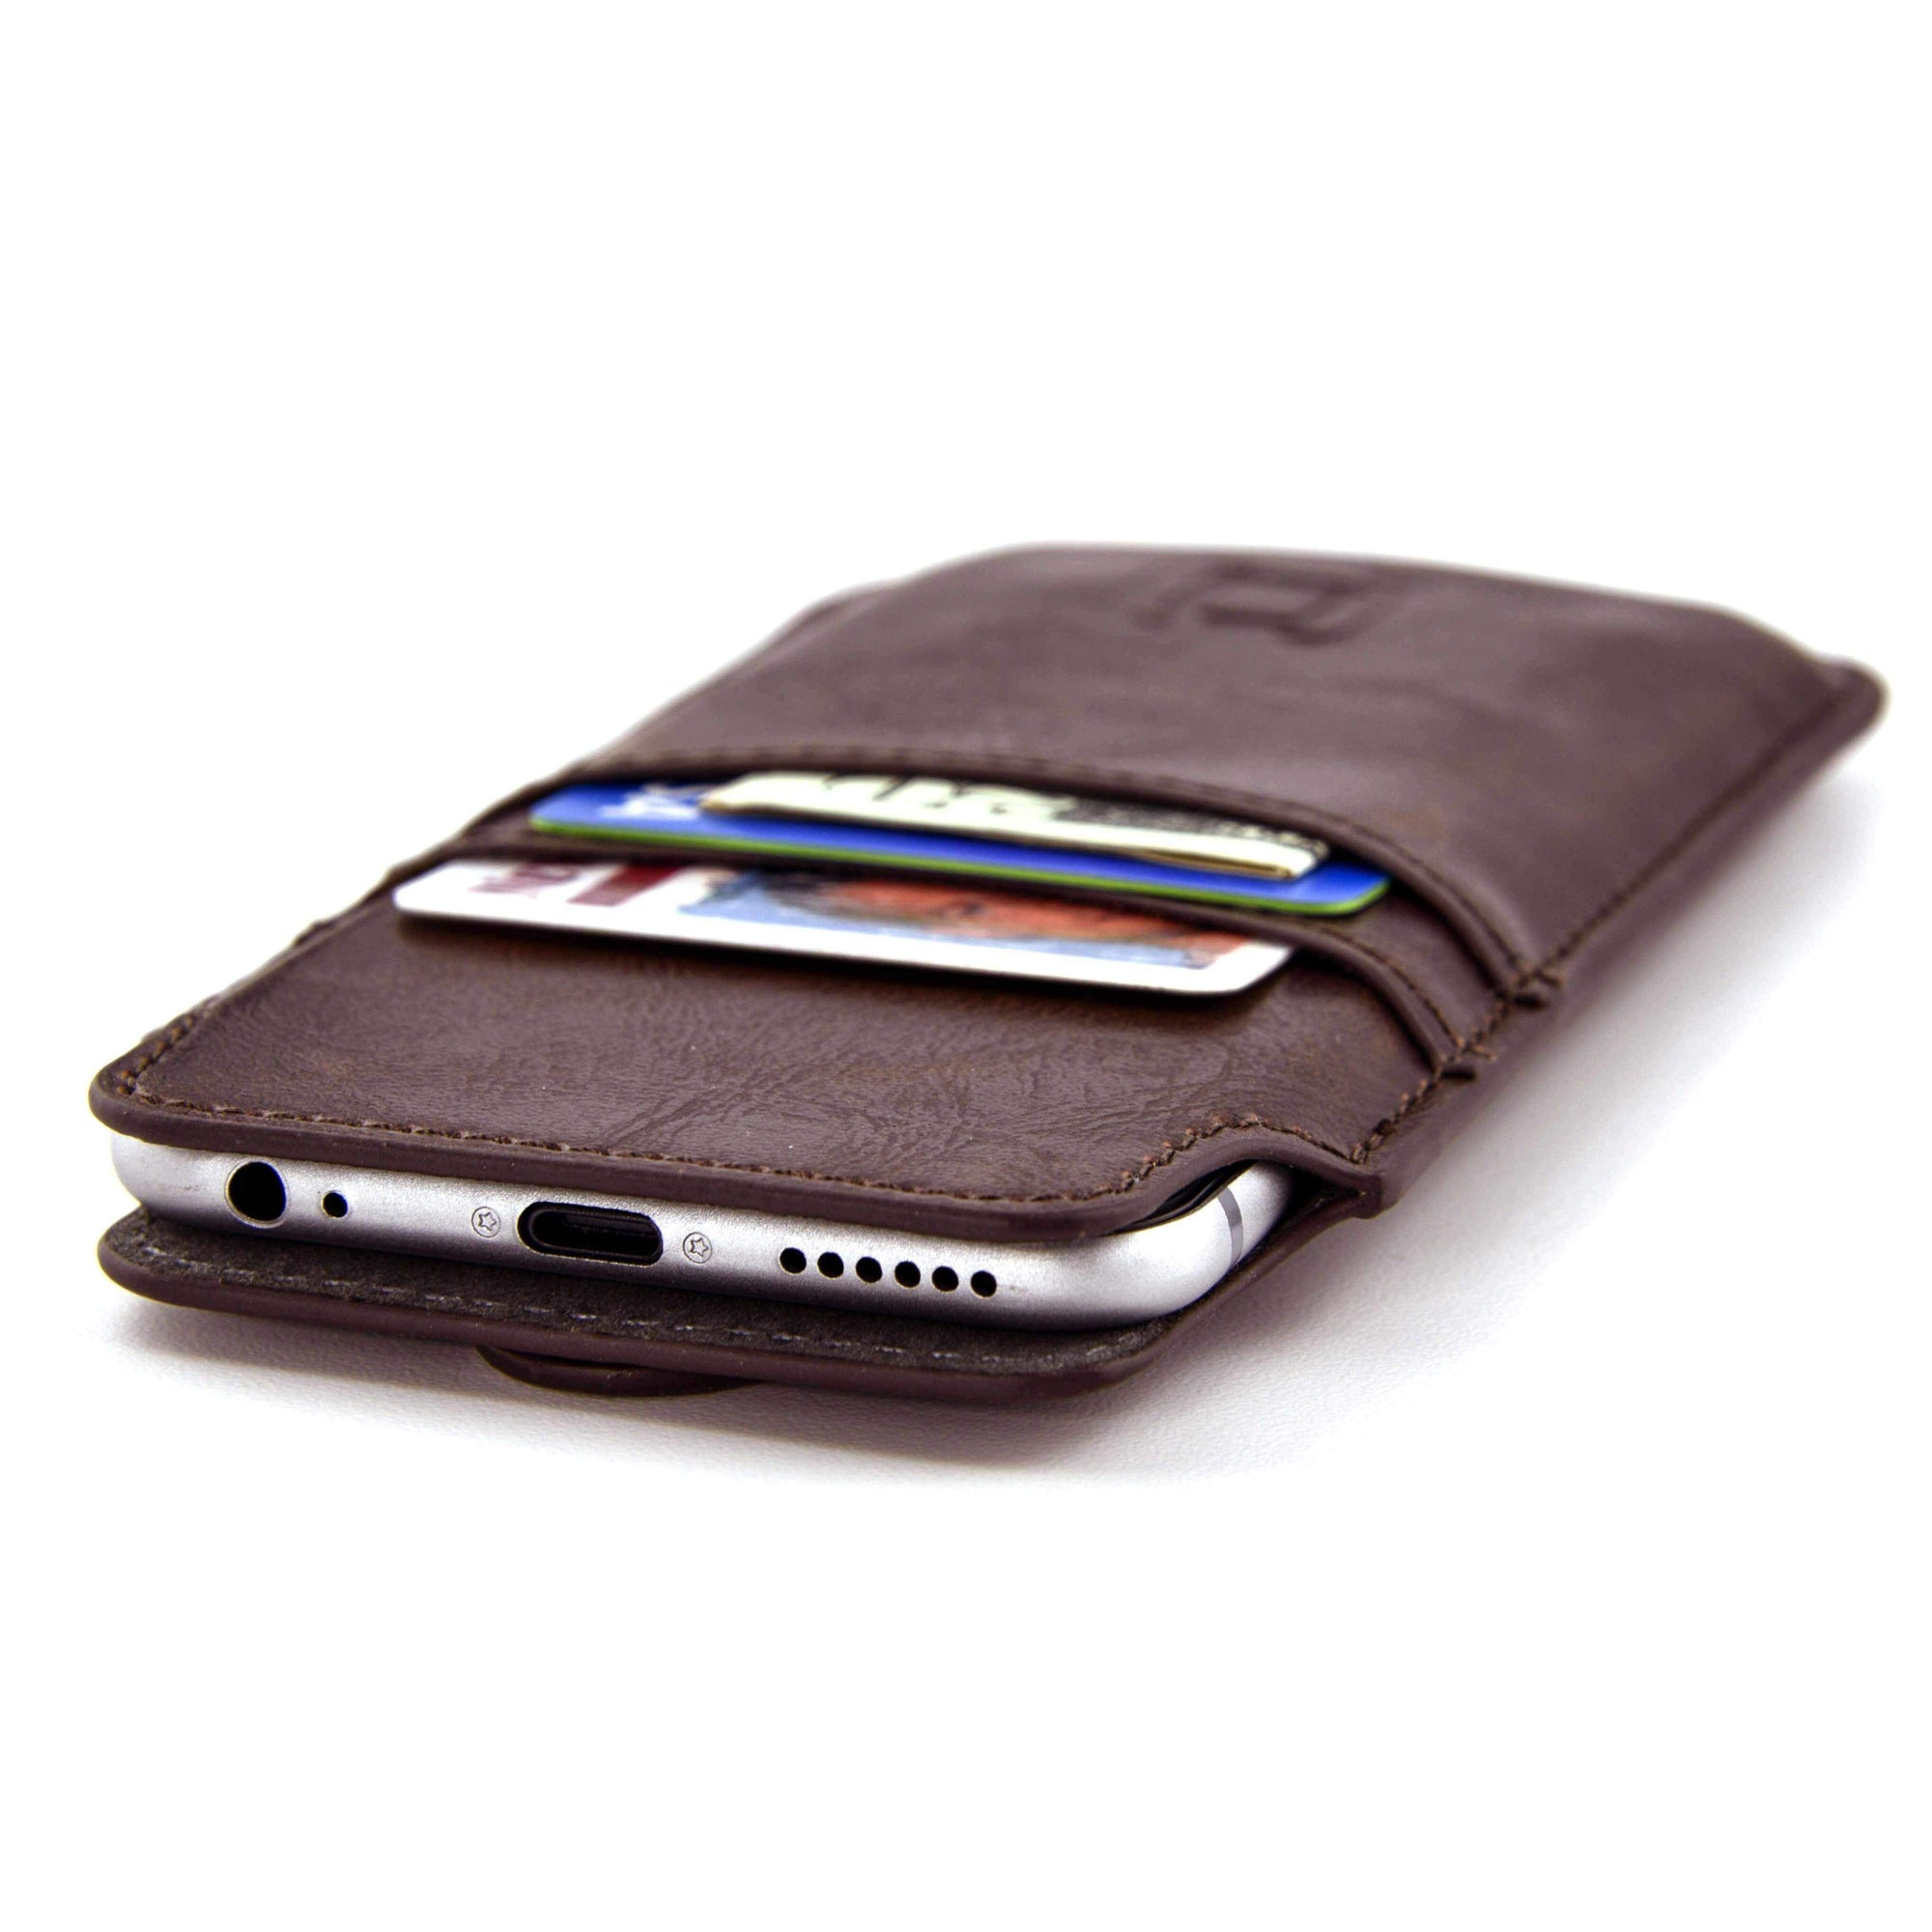 Provincial Wallet Sleeve with 2 Card Slots - iPhones iPhone Sleeve Dockem iPhone XS Max Vintage Brown